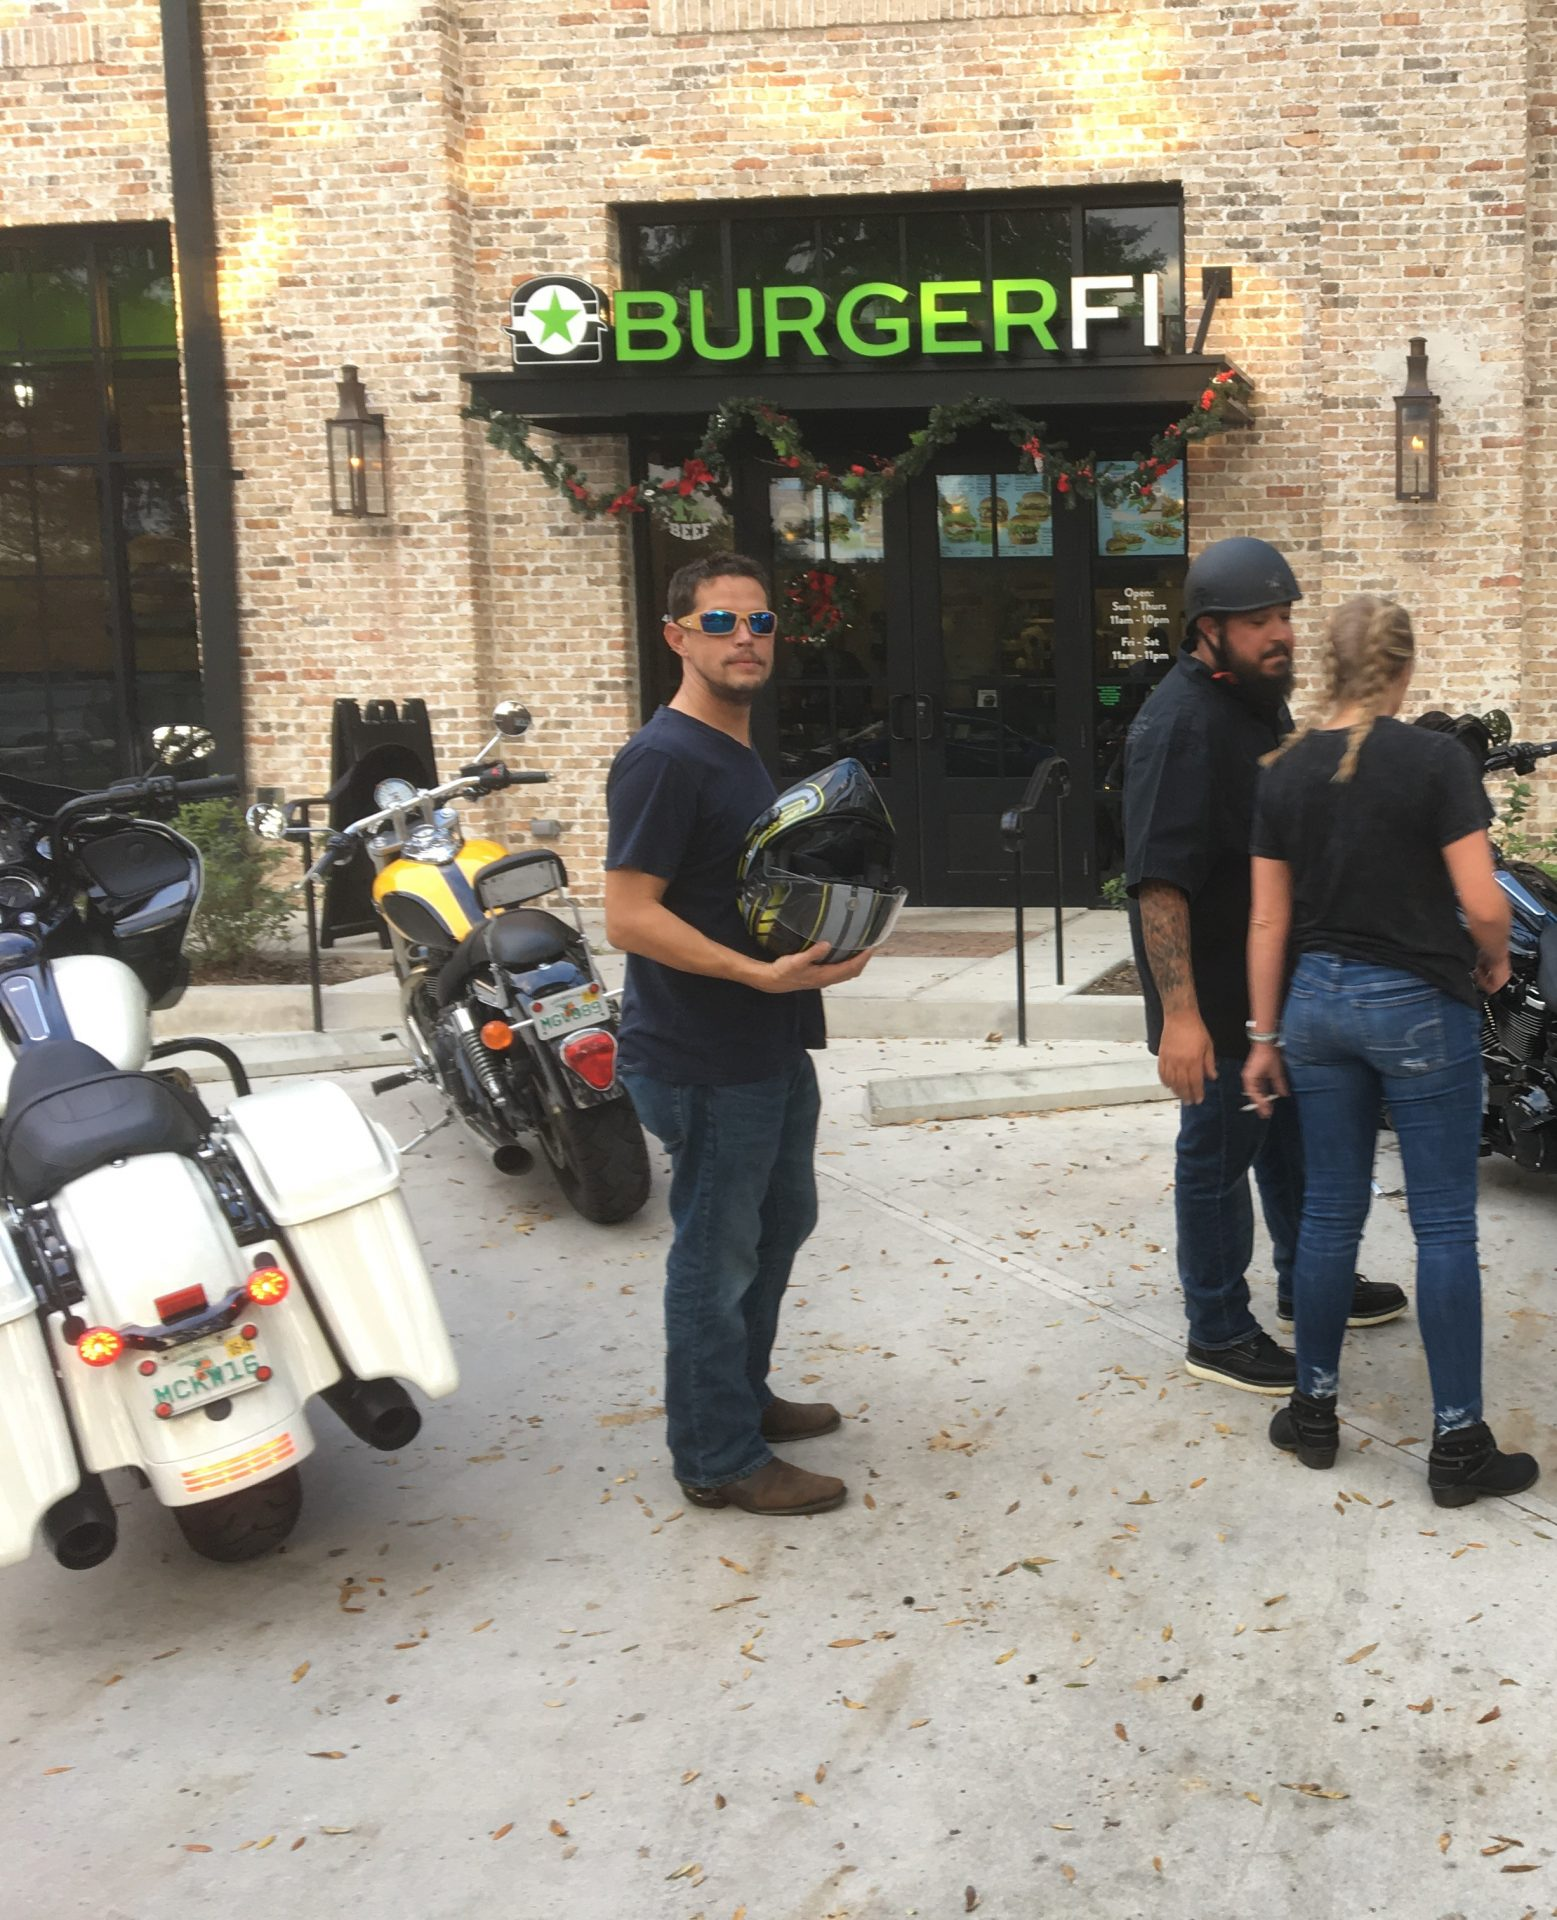 Stephen riding Harleys with Michael, Rob and Monica.  Stopping for lunch.